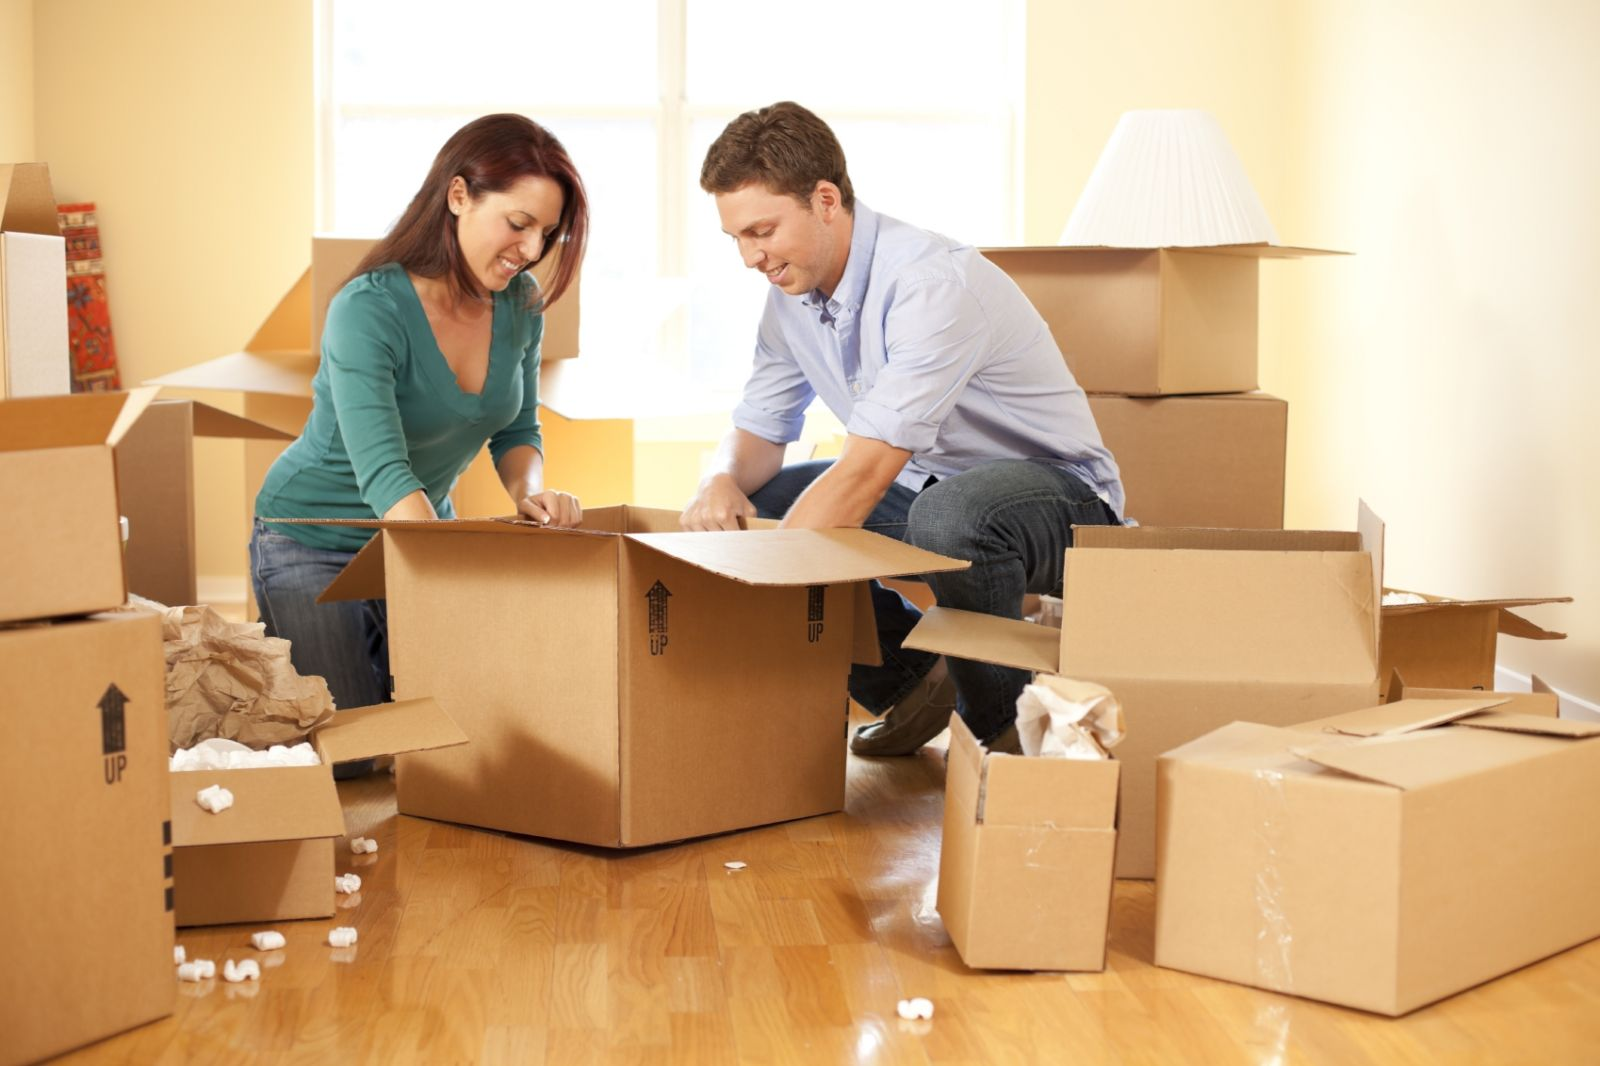 key_Couple-moving-house.jpg